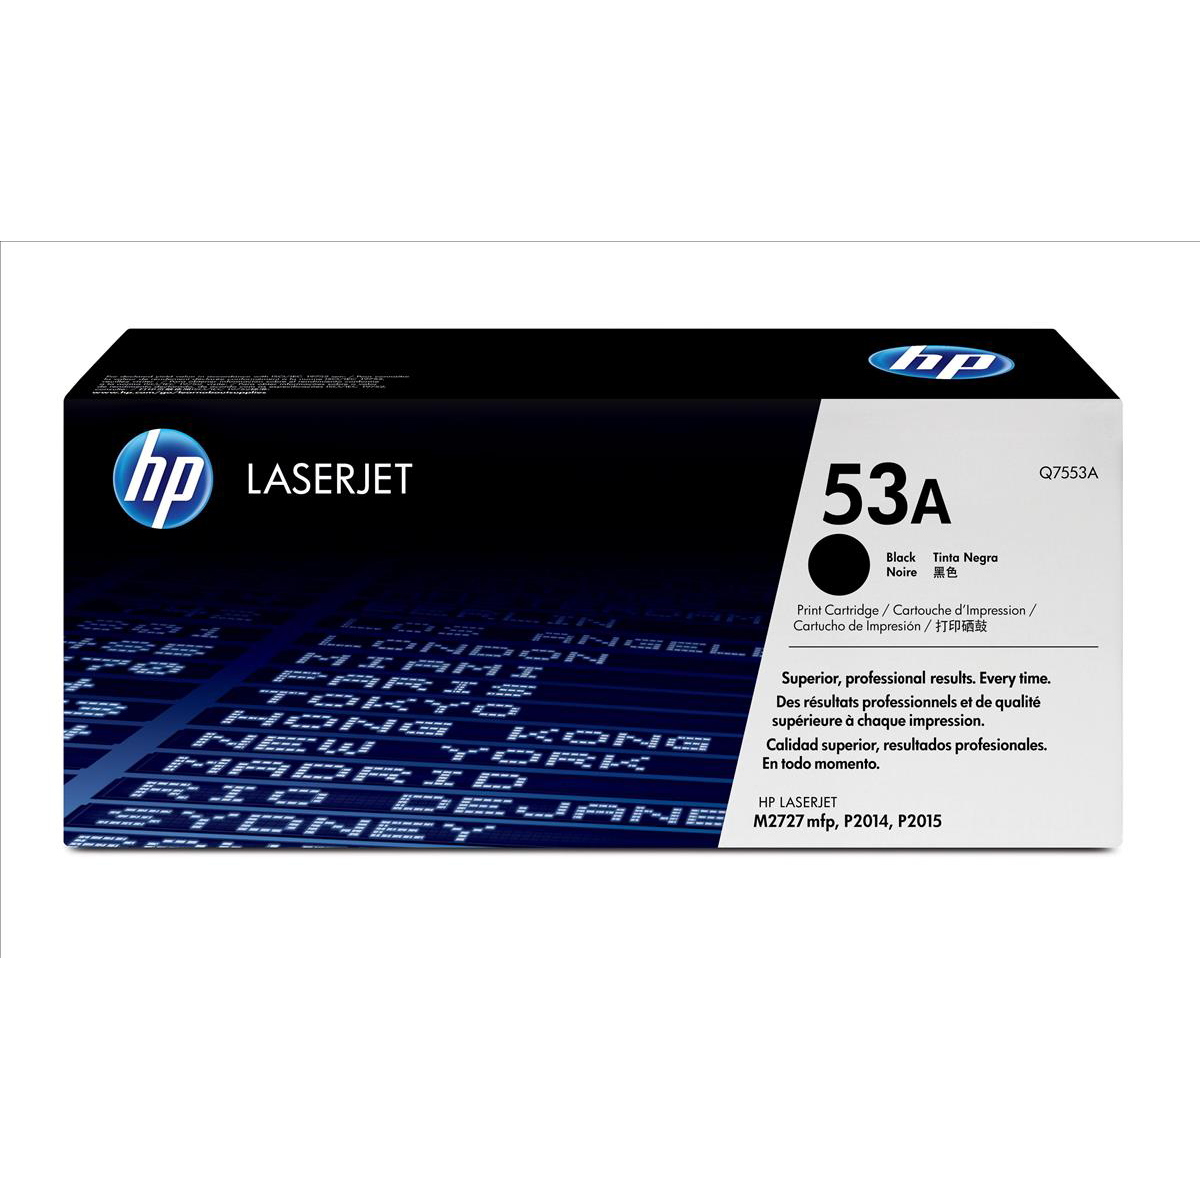 HP 53A Laser Toner Cartridge Page Life 3000pp Black Ref Q7553A